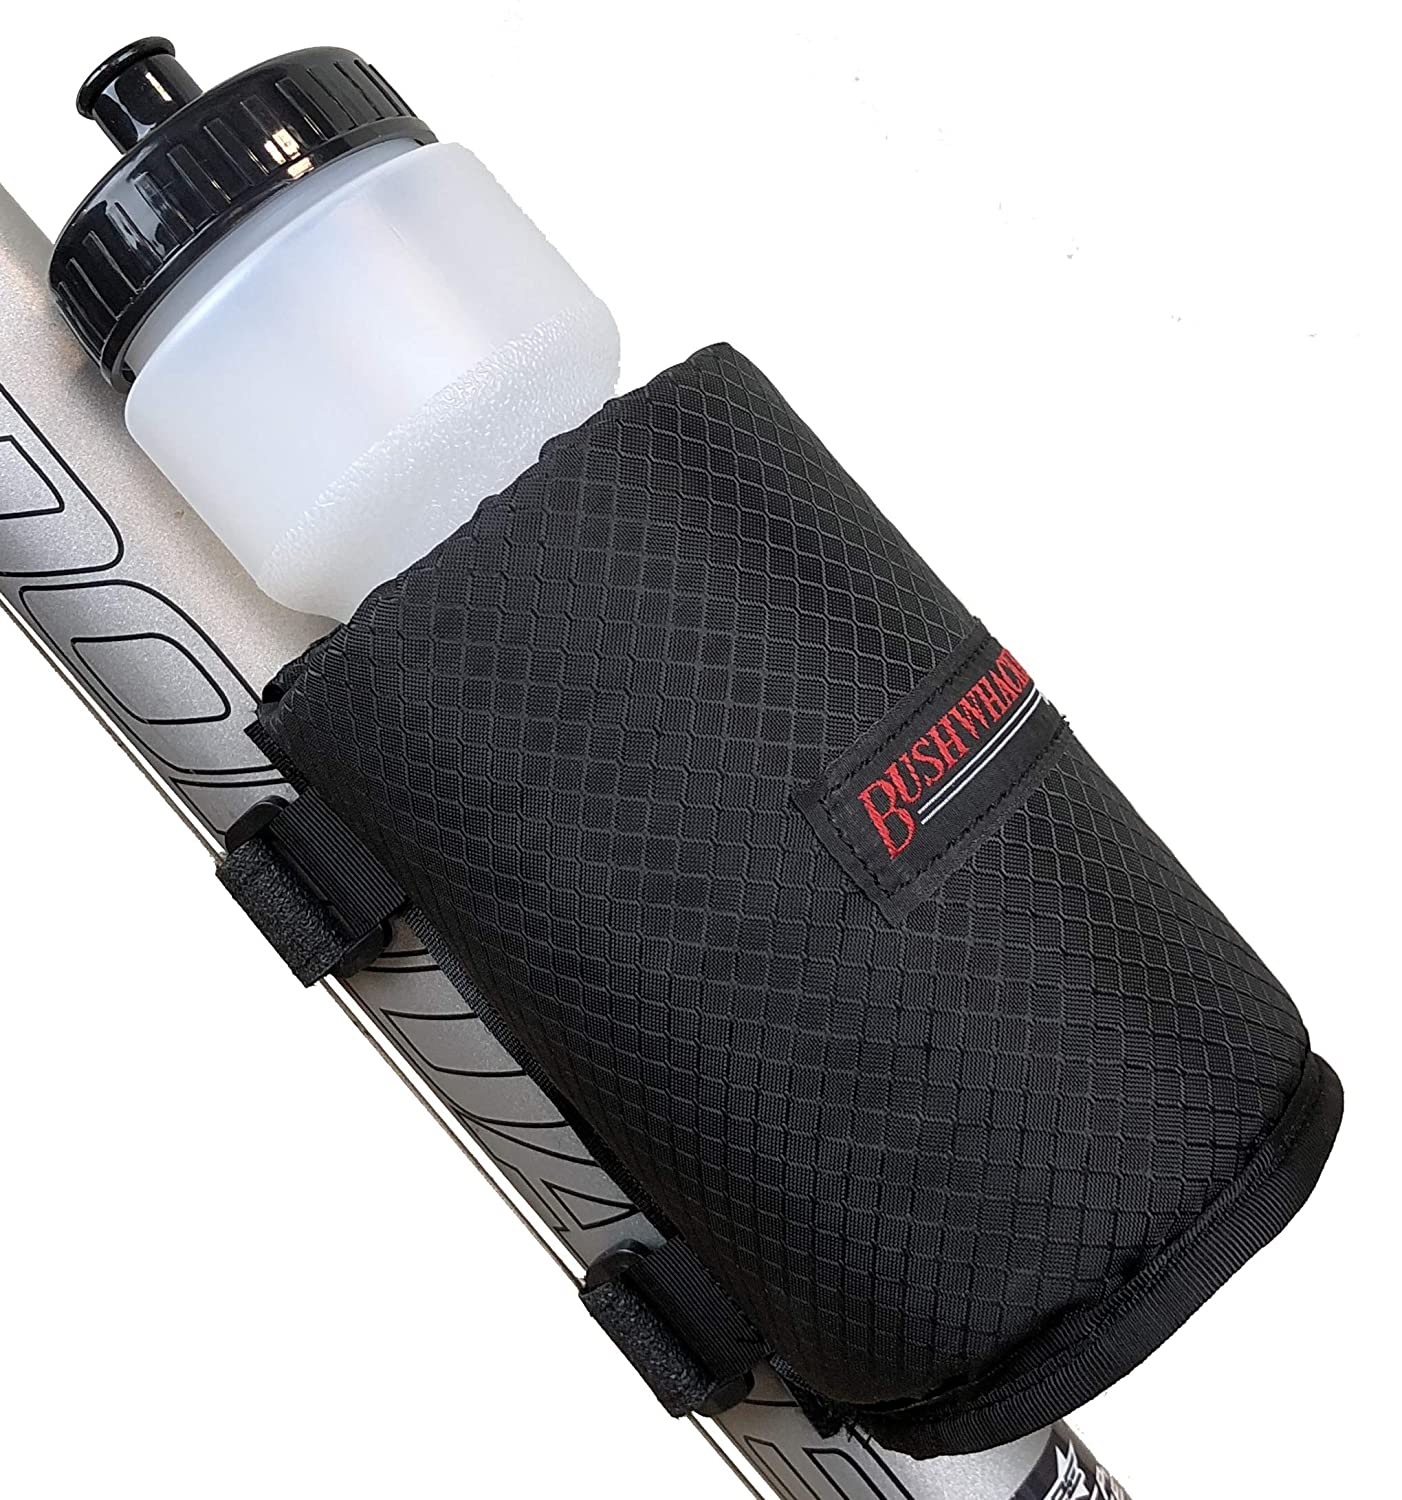 Bushwhacker Olympia Insulated Bicycle Water Bottle Holder w/ 28 Ounce Bottle - Mounts with Velcro Straps No Tools Hardware Screws Required - Attaches to Top Down Seat Tube - Bike Cage Cycling Mount